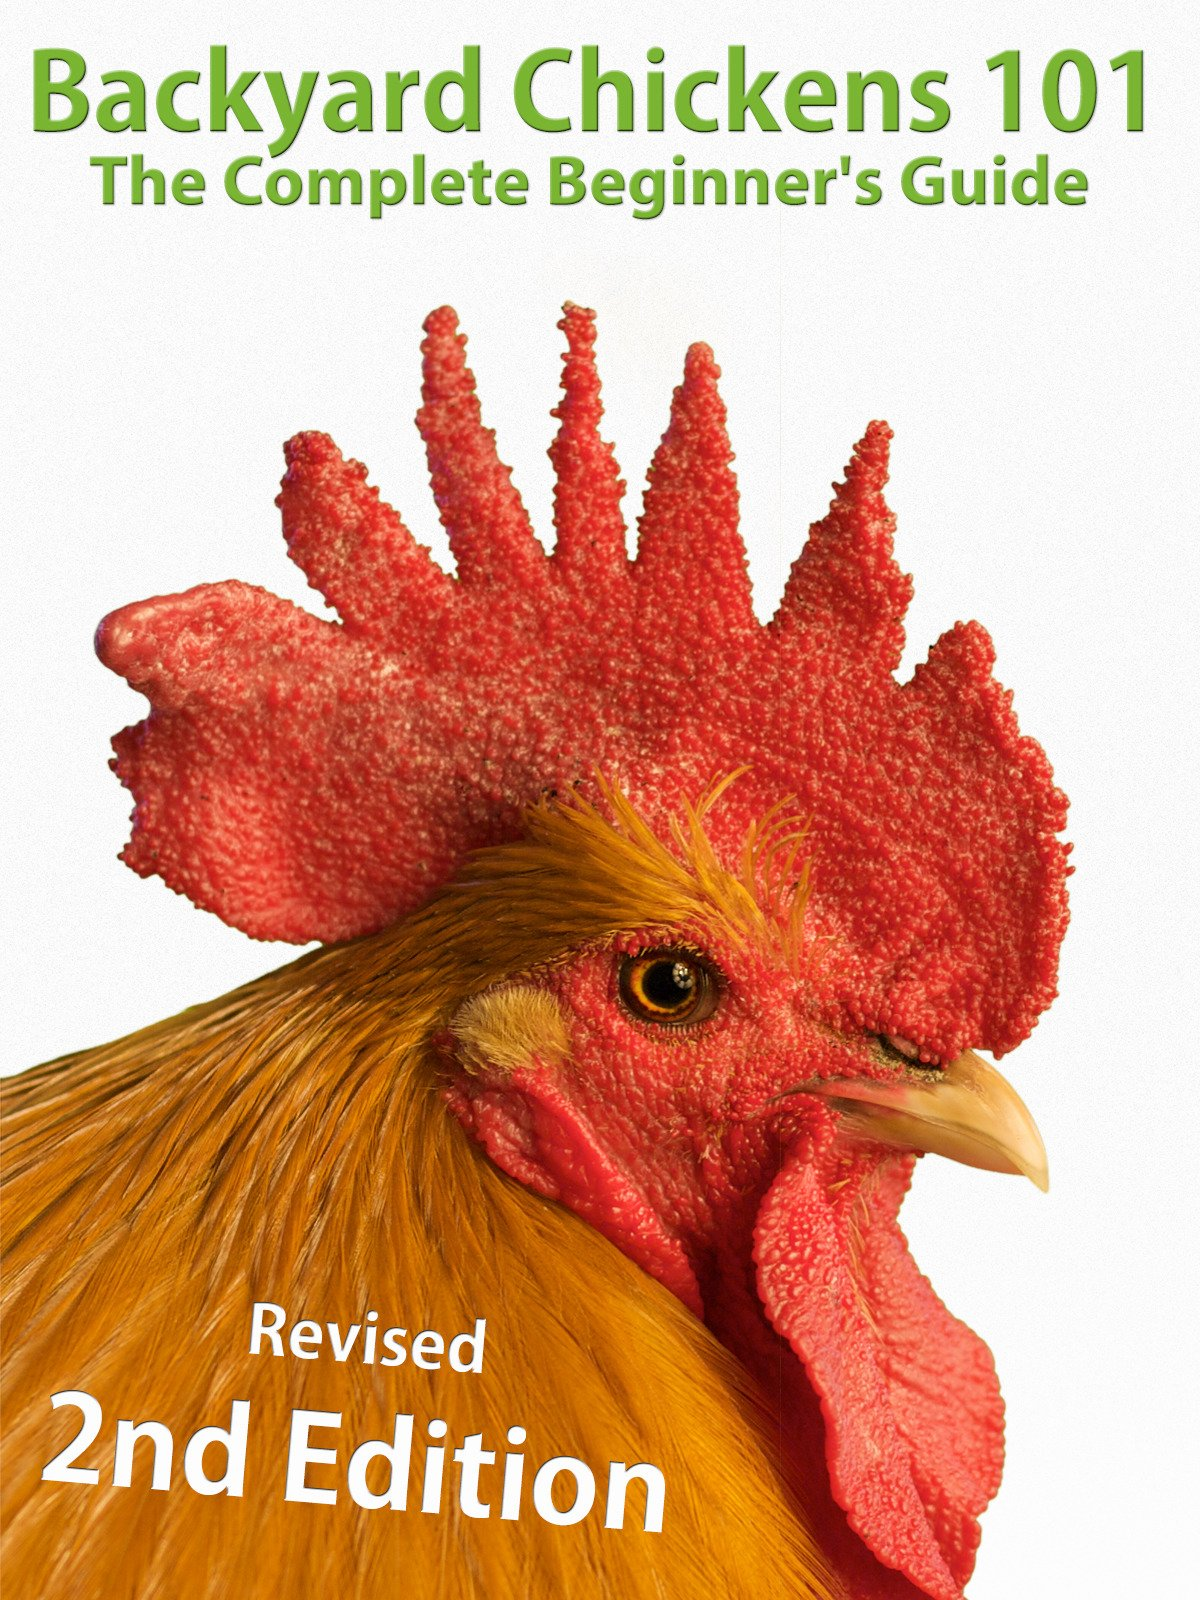 Backyard Chickens 101: The Complete Beginner's Guide